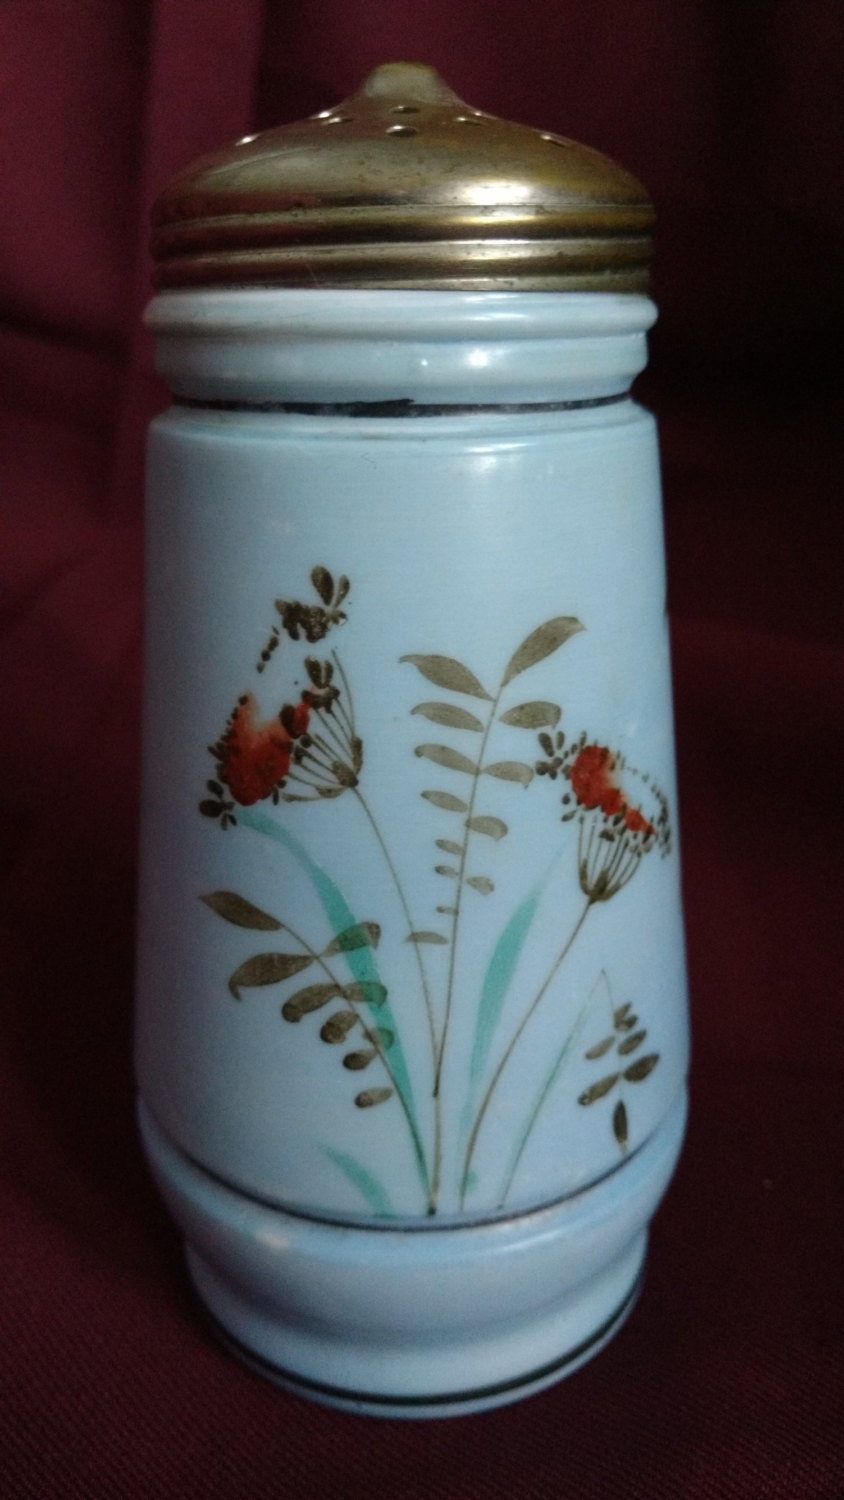 Vintage sugar shaker and ennobled